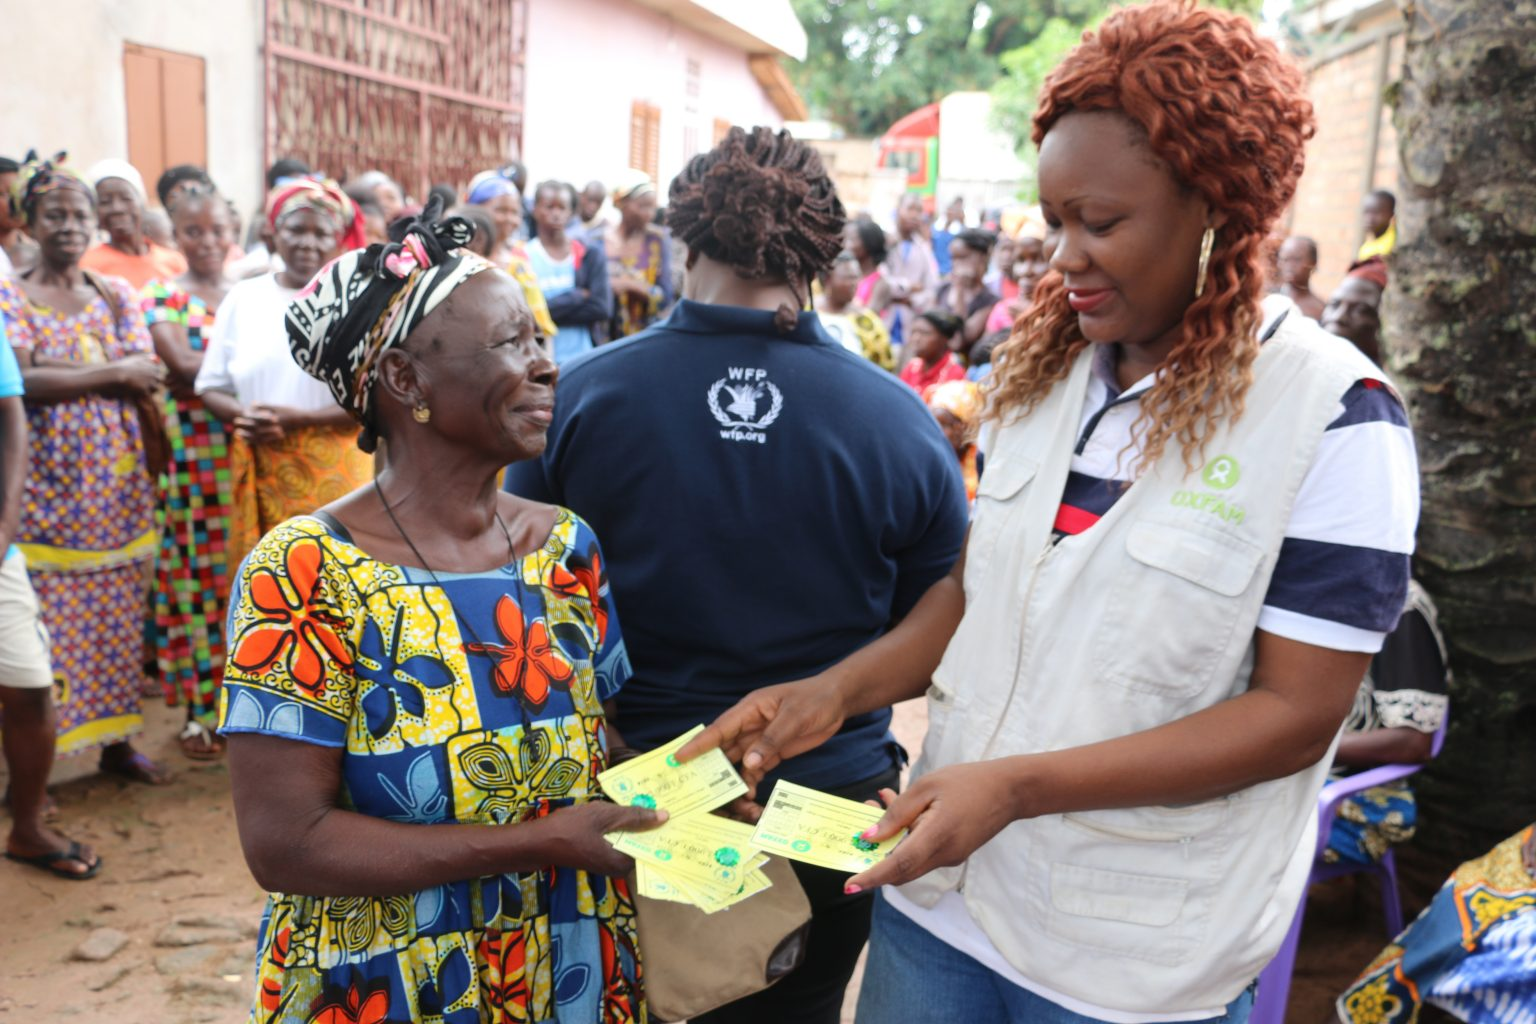 An elderly woman receives food vouchers from a WFP aid worker